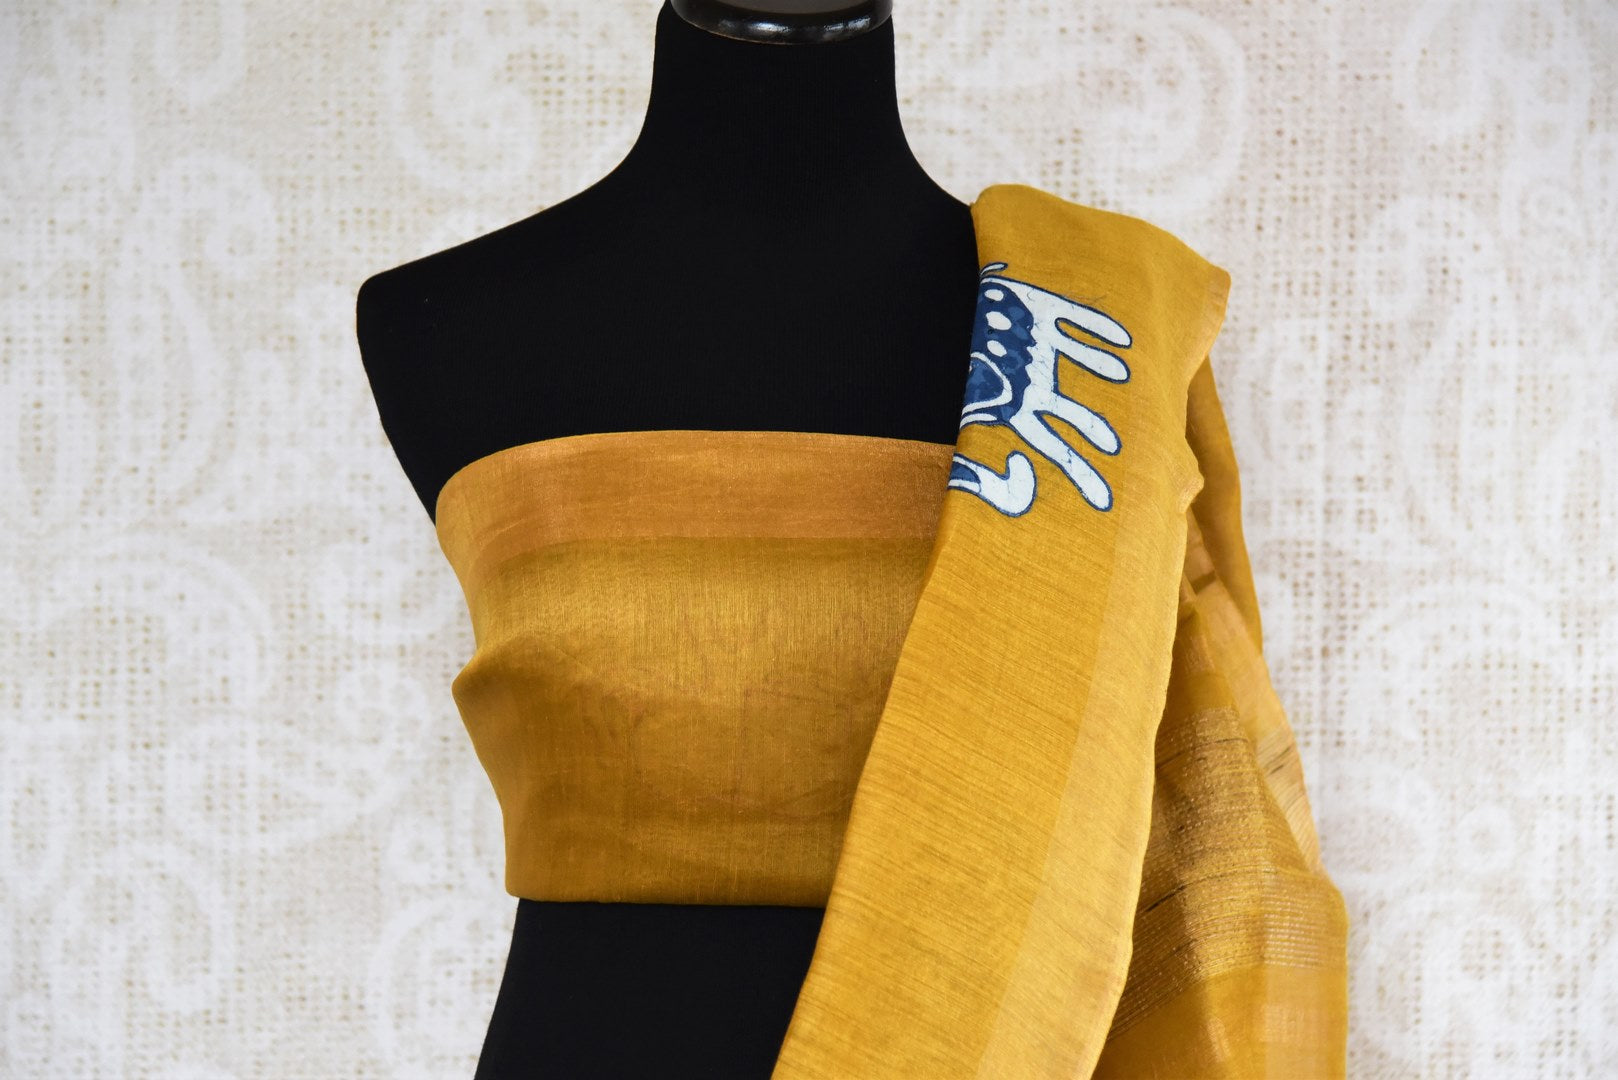 Mustard yellow tussar silk saree for online shopping in USA with Kalamkari applique work. Beautifully designed woven sari is a graceful choice for special occasions. Shop Indian handloom sarees, silk saris in USA from an alluring collection available at Pure Elegance fashion store.-blouse pallu